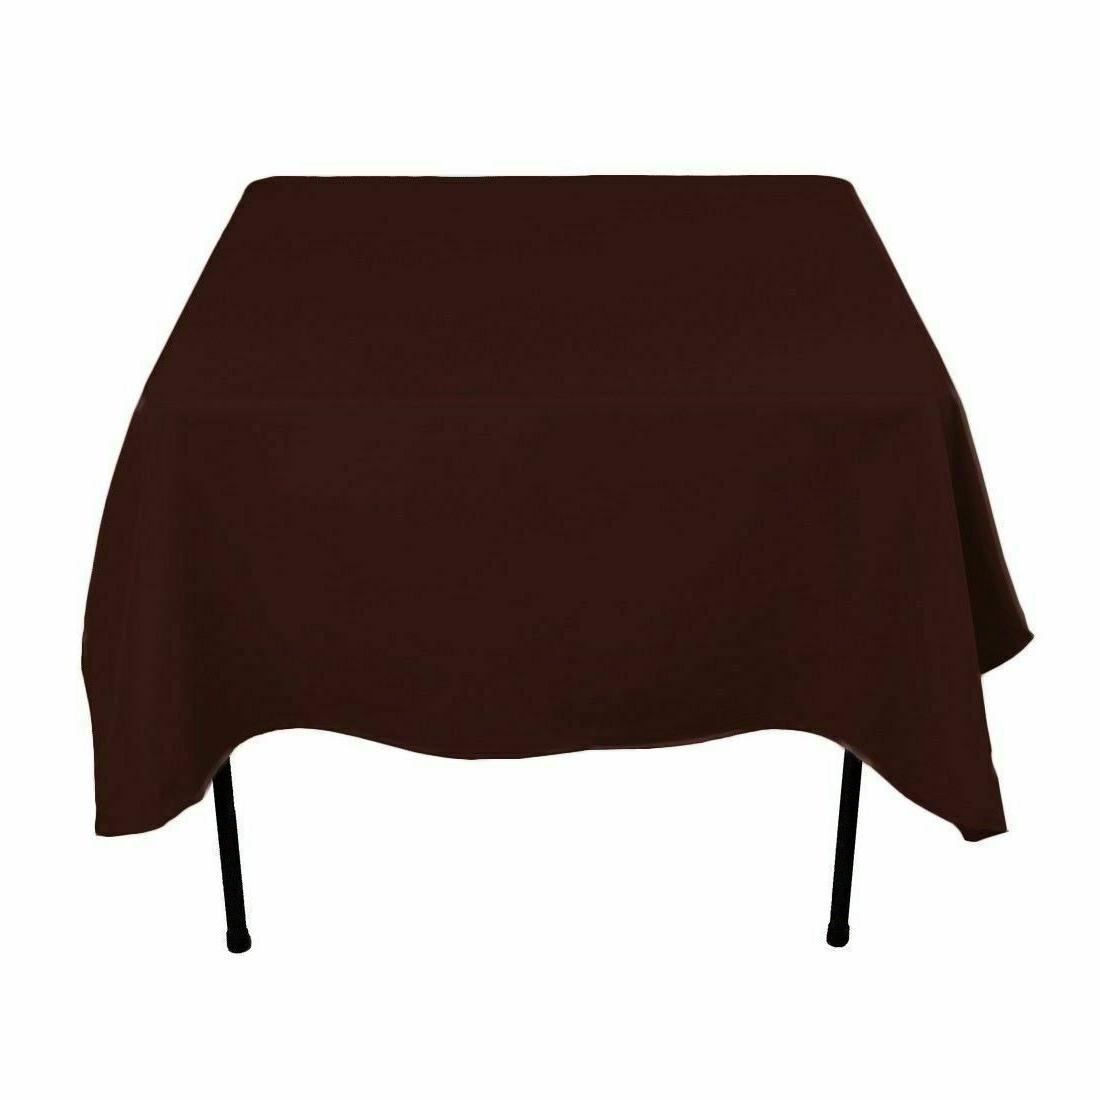 Gee Di Moda Square Tablecloth - 70 x 70 Inch - Chocolate Squ